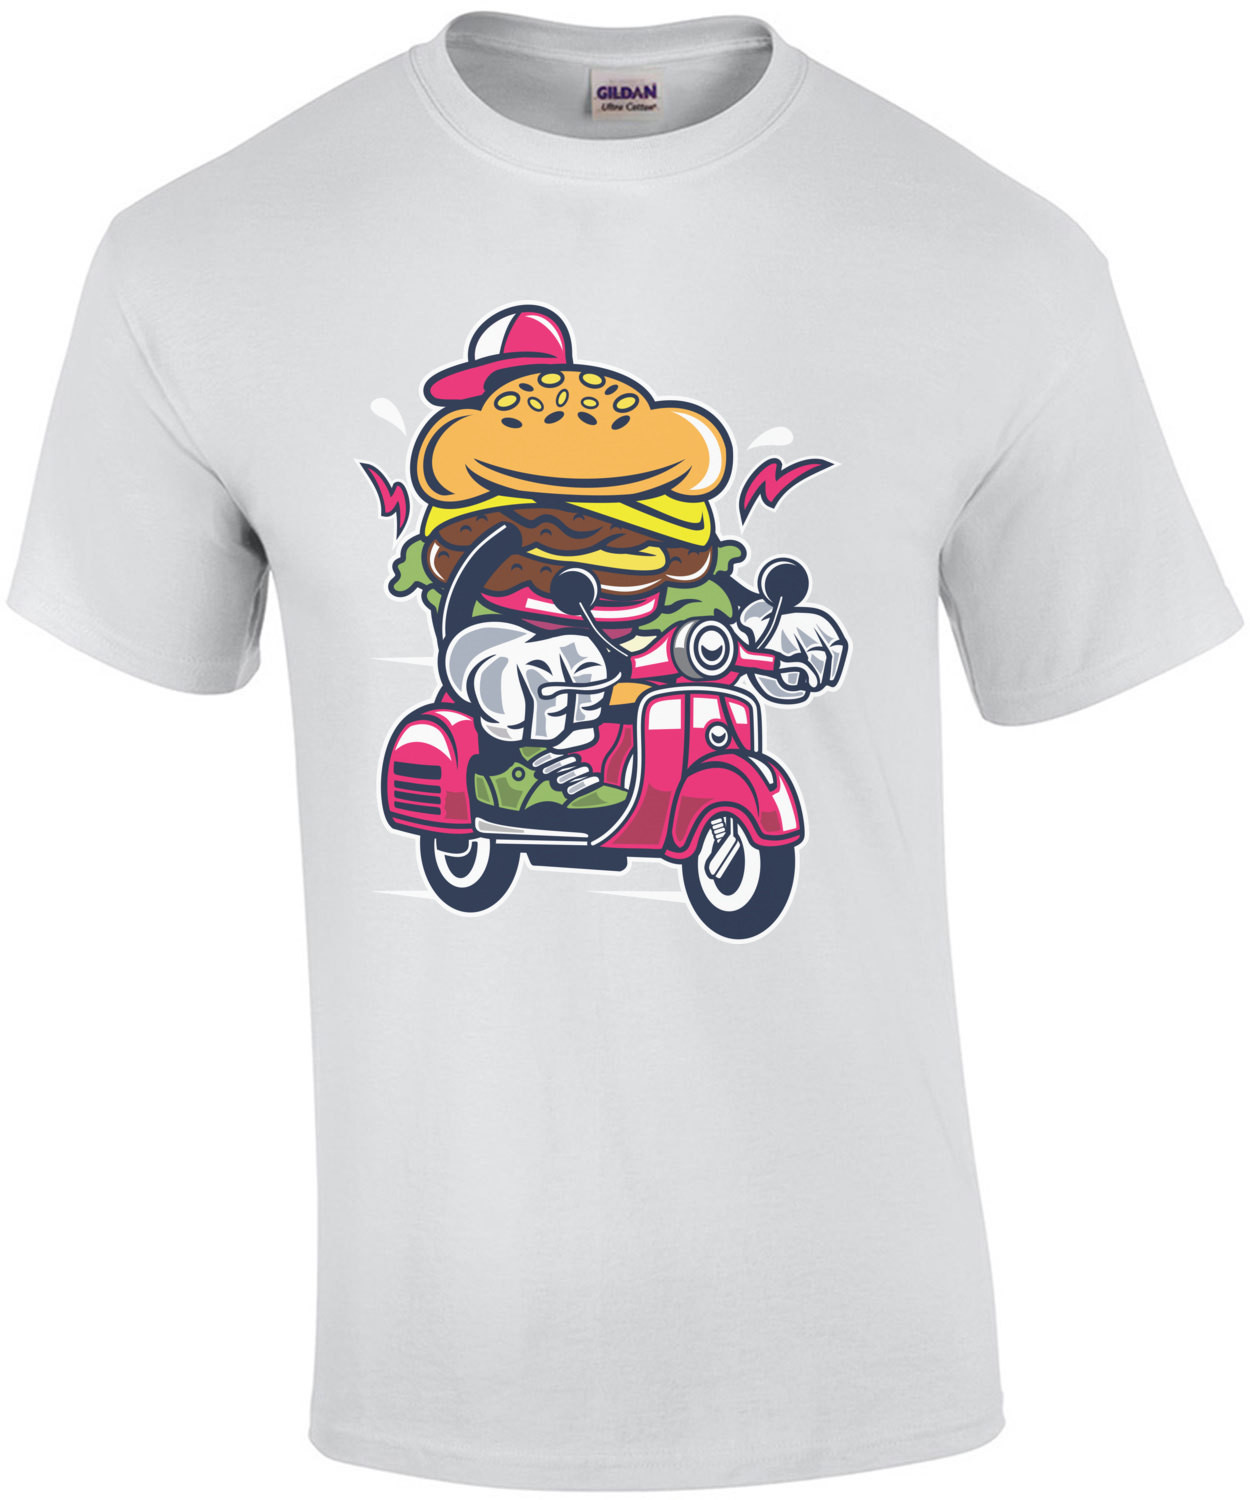 Burger On A Scooter T-Shirt